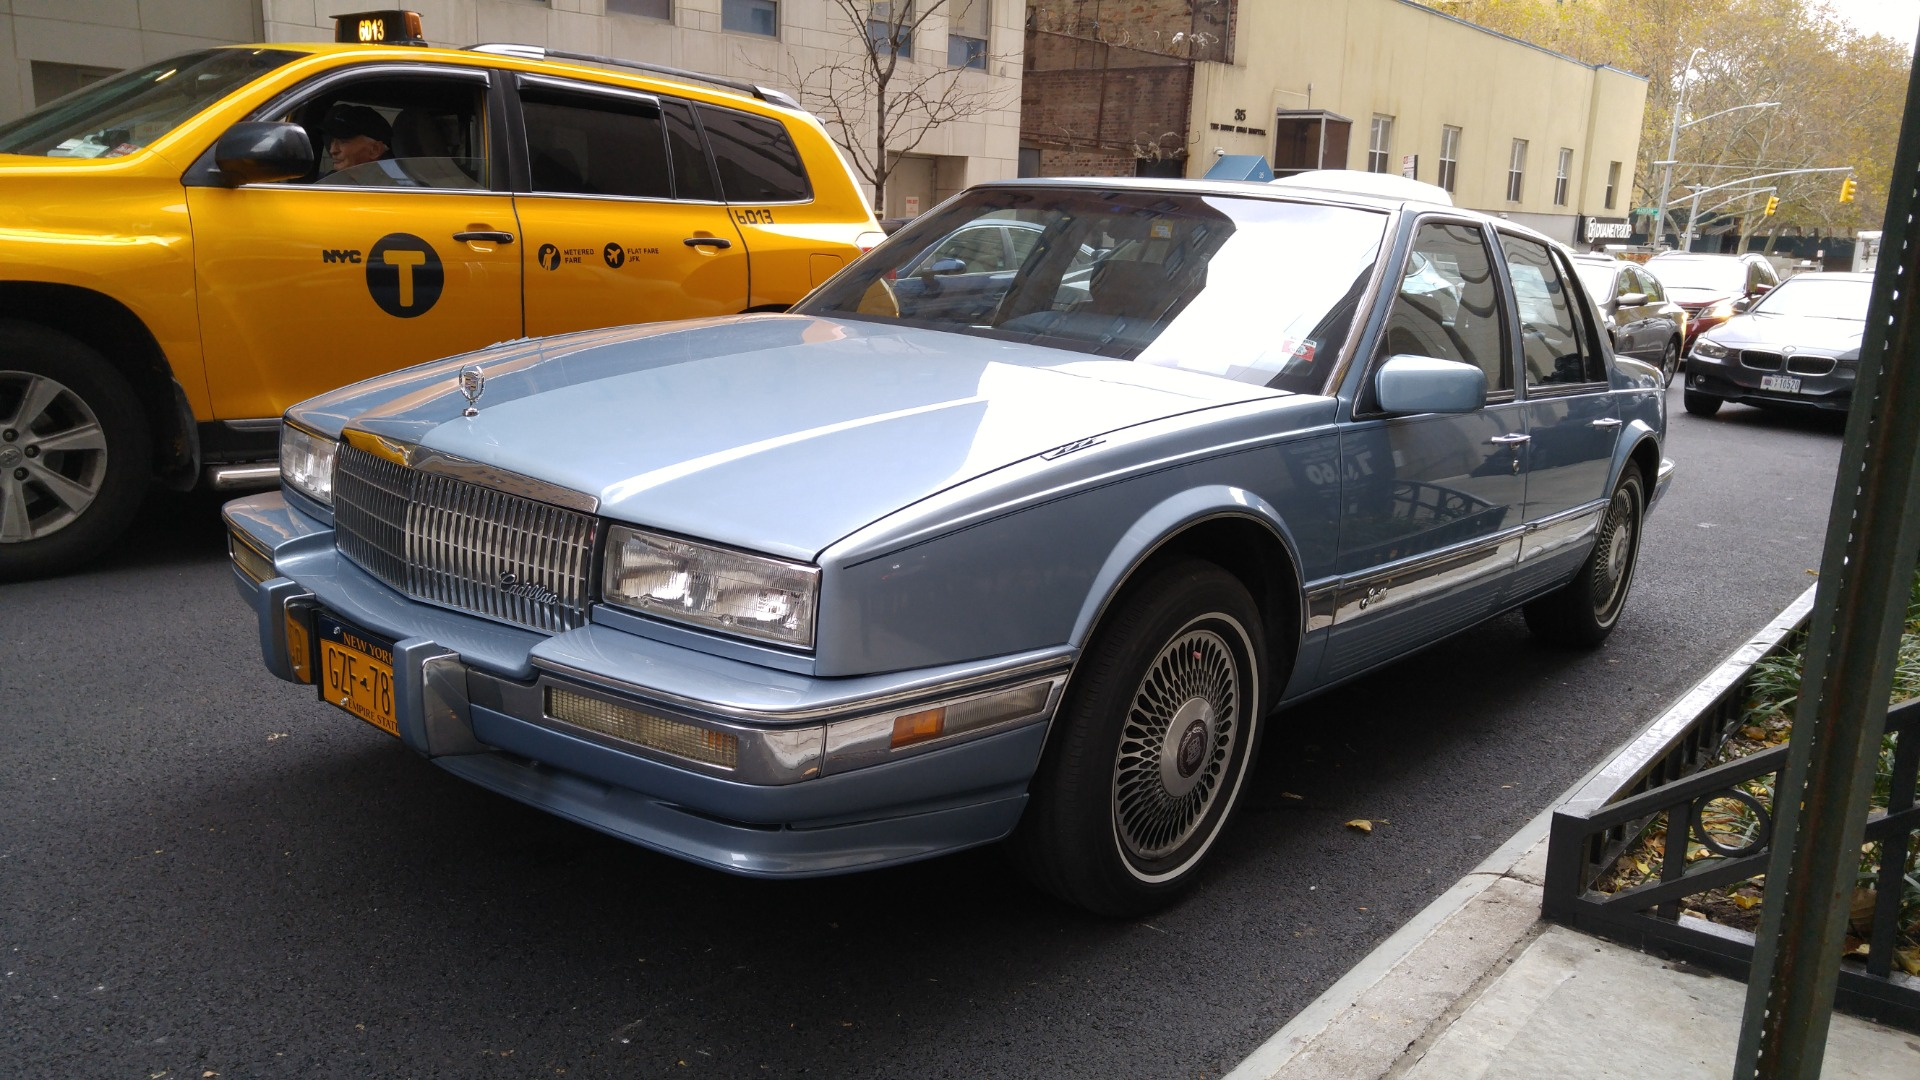 1990 Cadillac Seville Stock # 1990CADSEV for sale near New ...